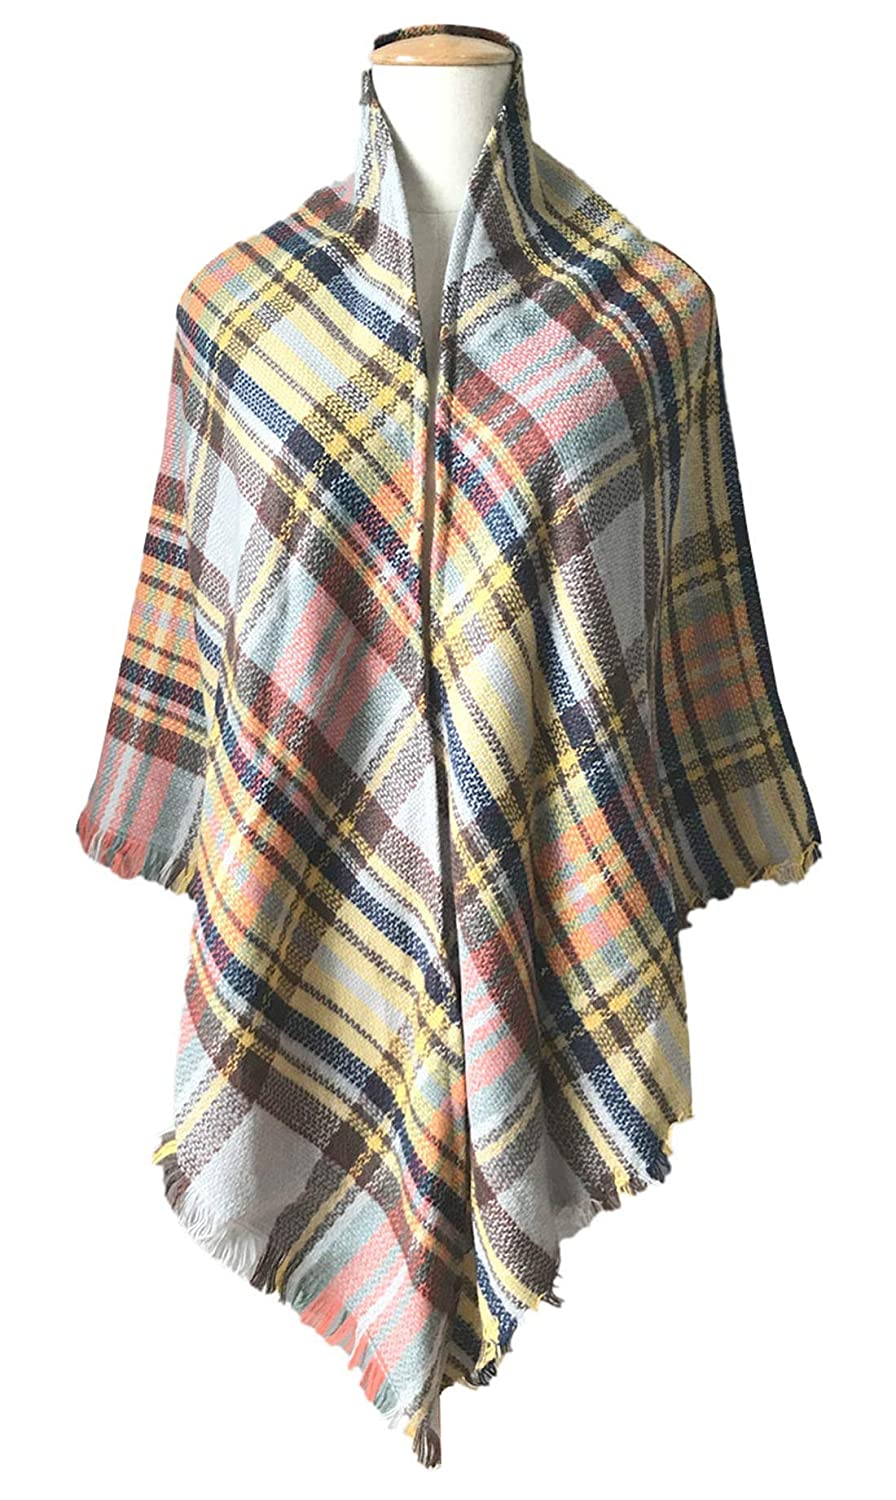 FEOYA Unisex Plaid Tartan Reversible Checked Warm Scarf Shawl Wrap For Fall and Winter Camel